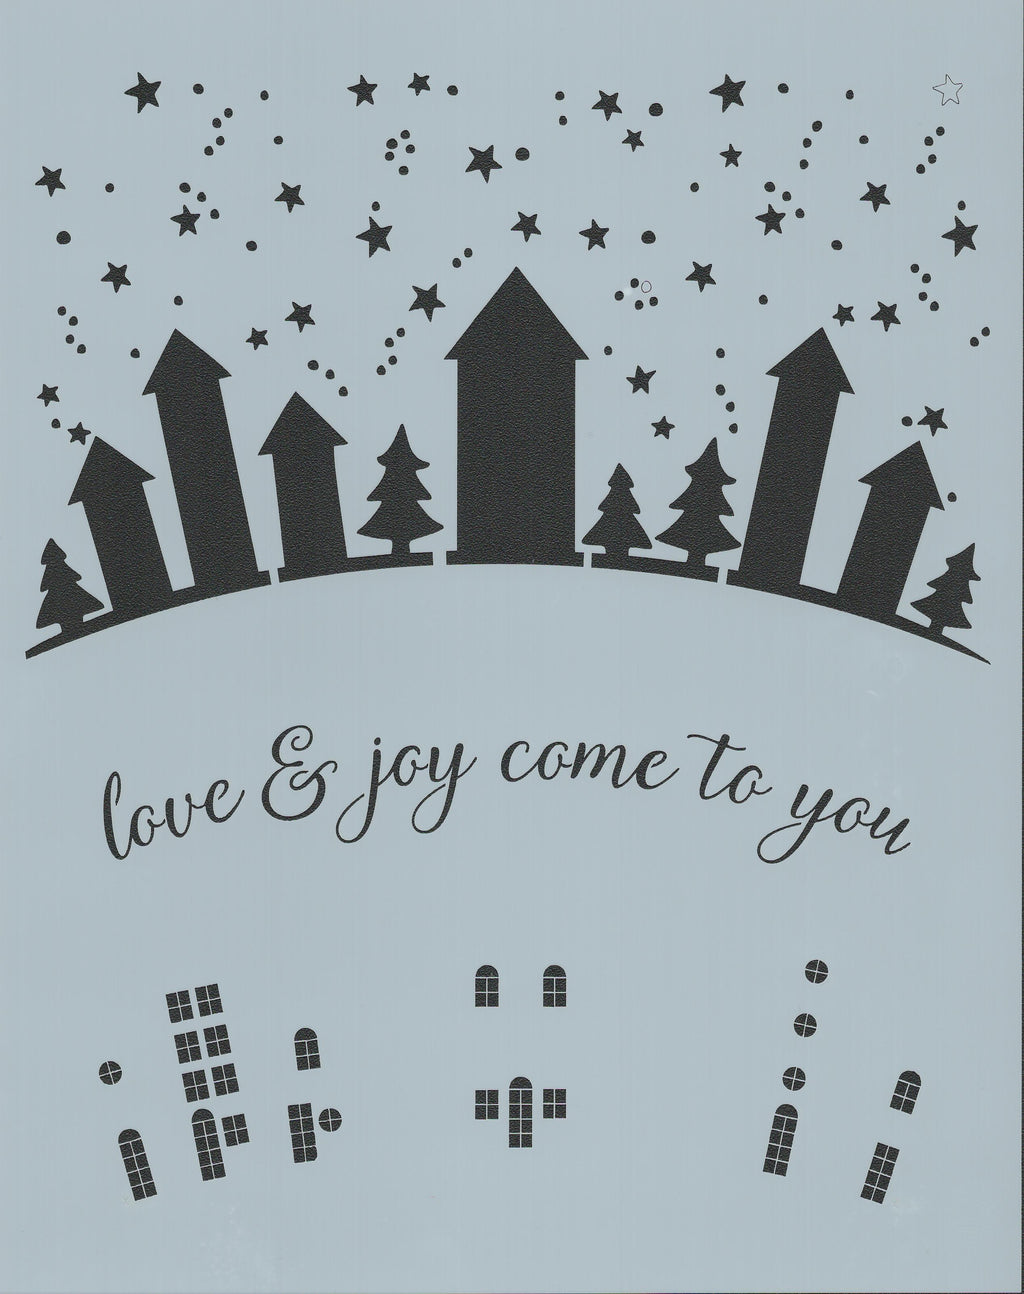 Love and Joy Come to You